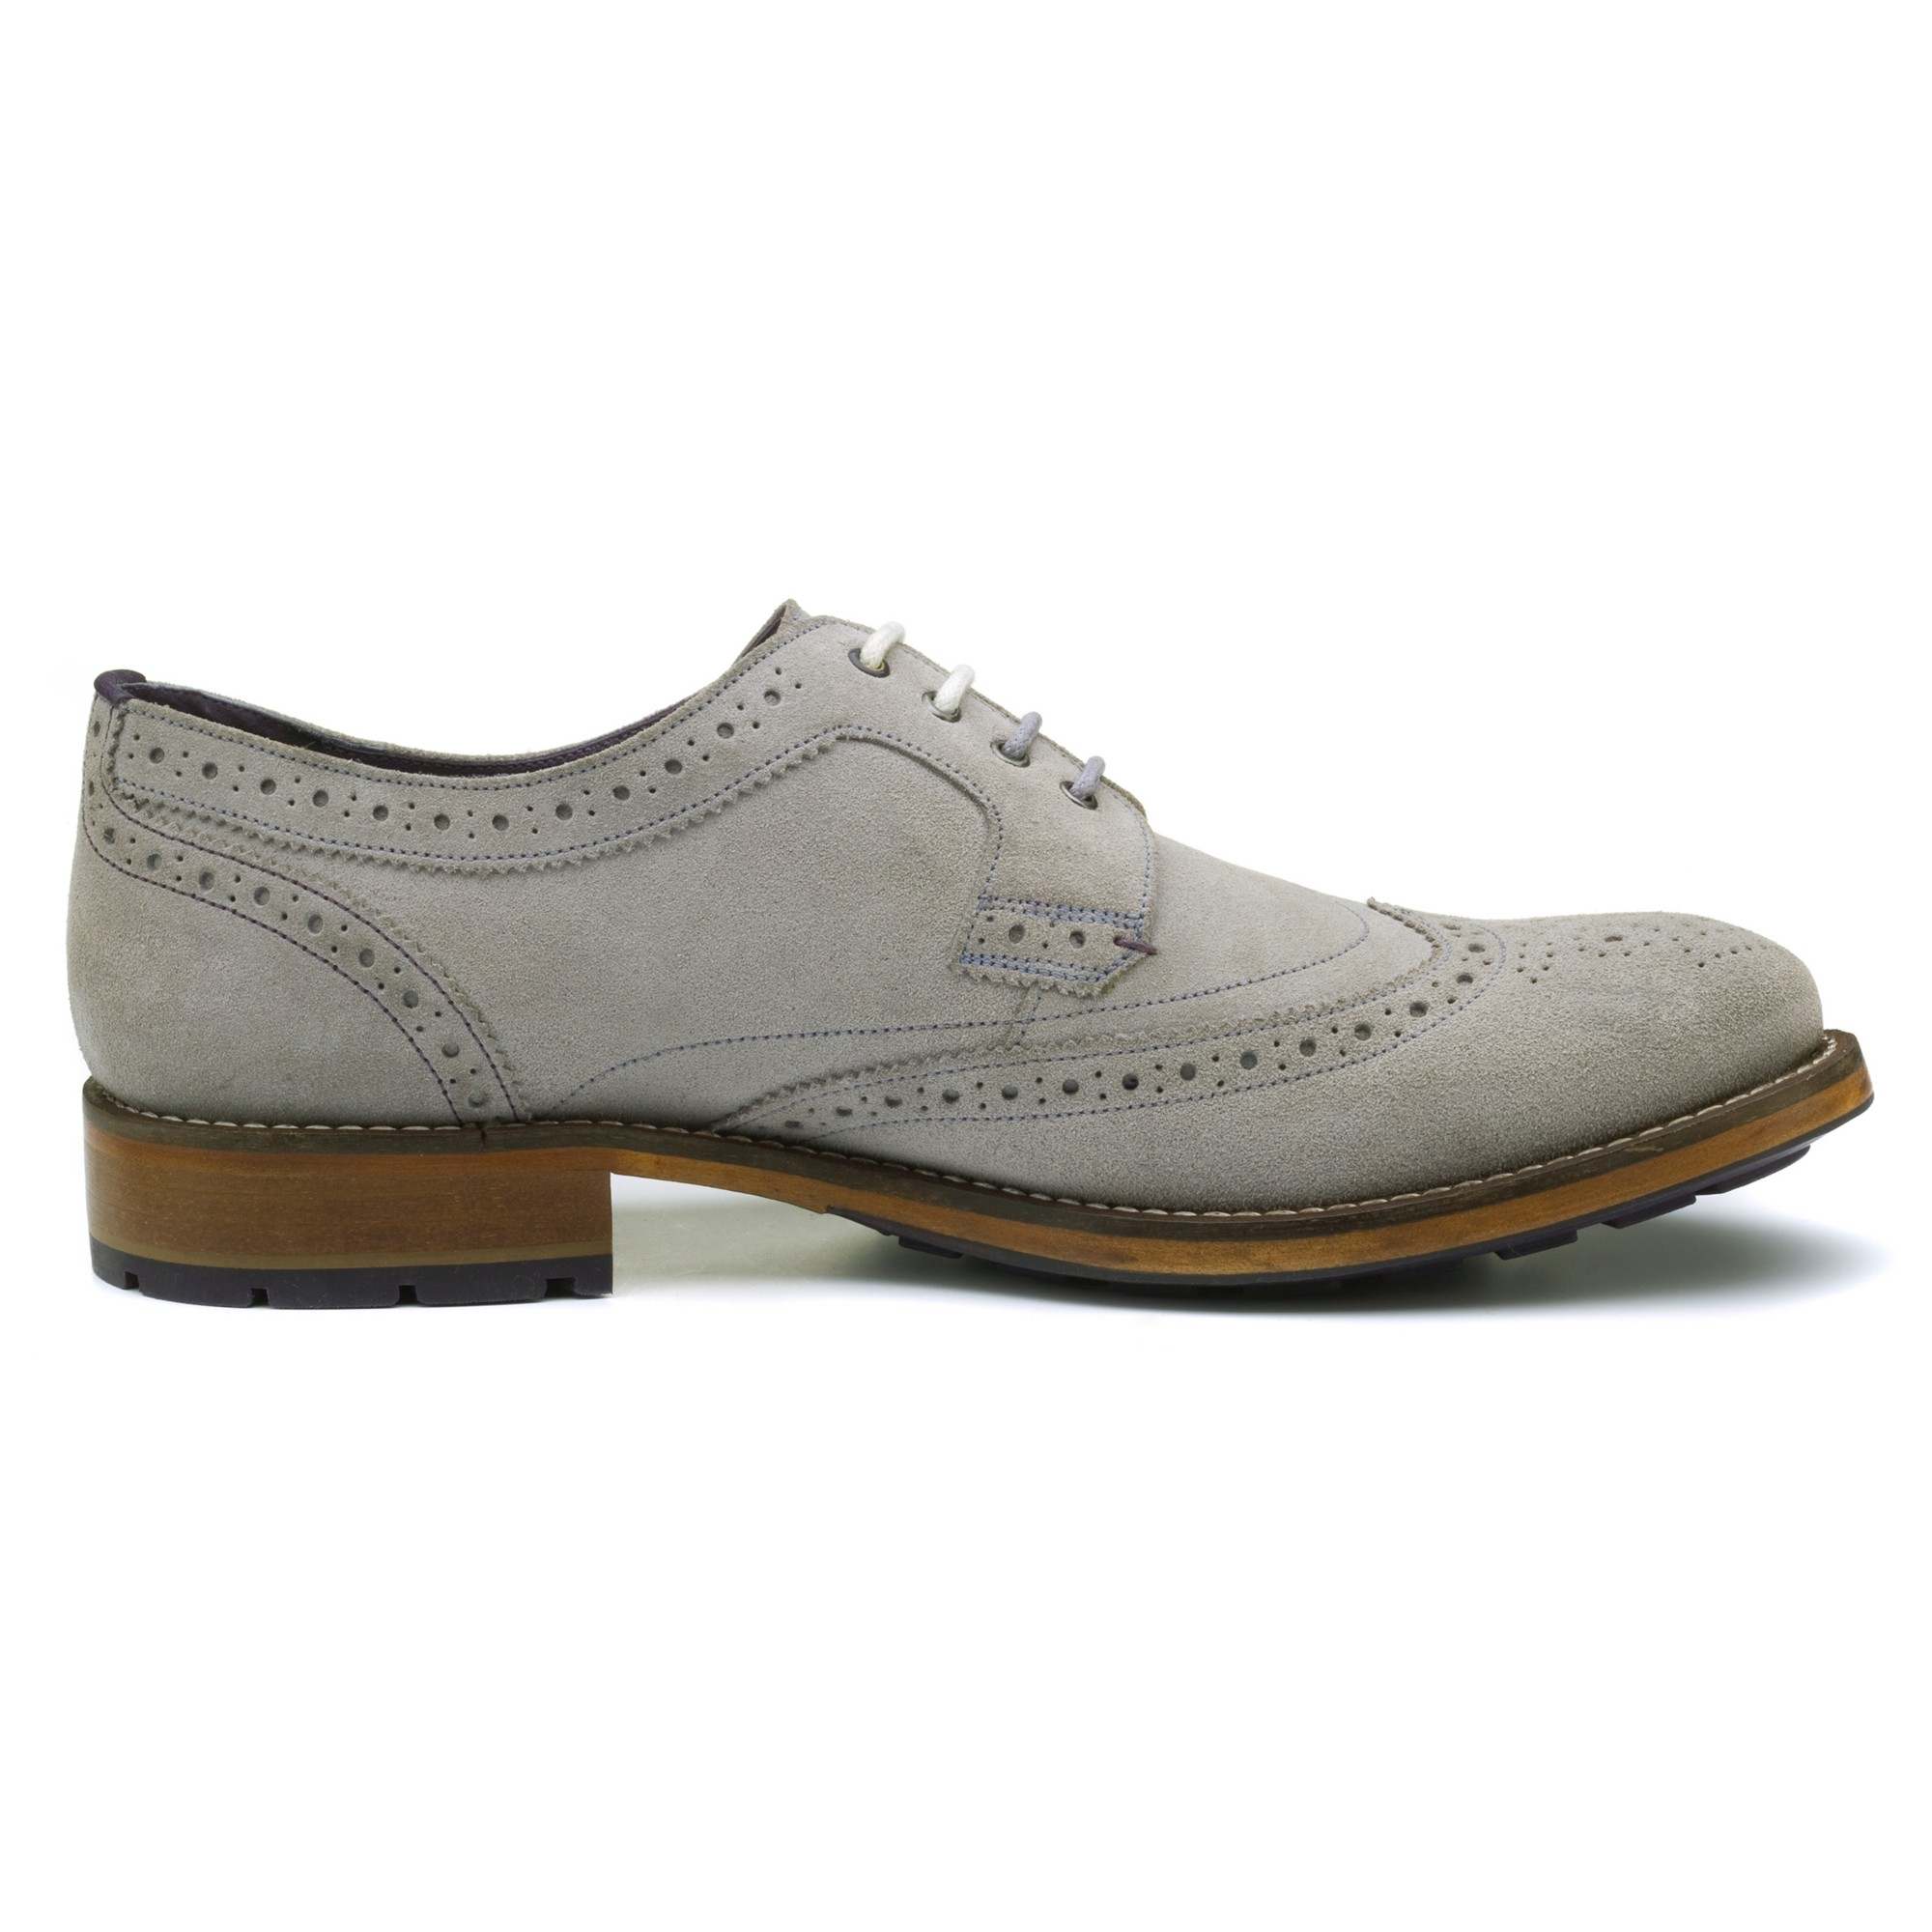 Ted Baker Derby Shoes Suede